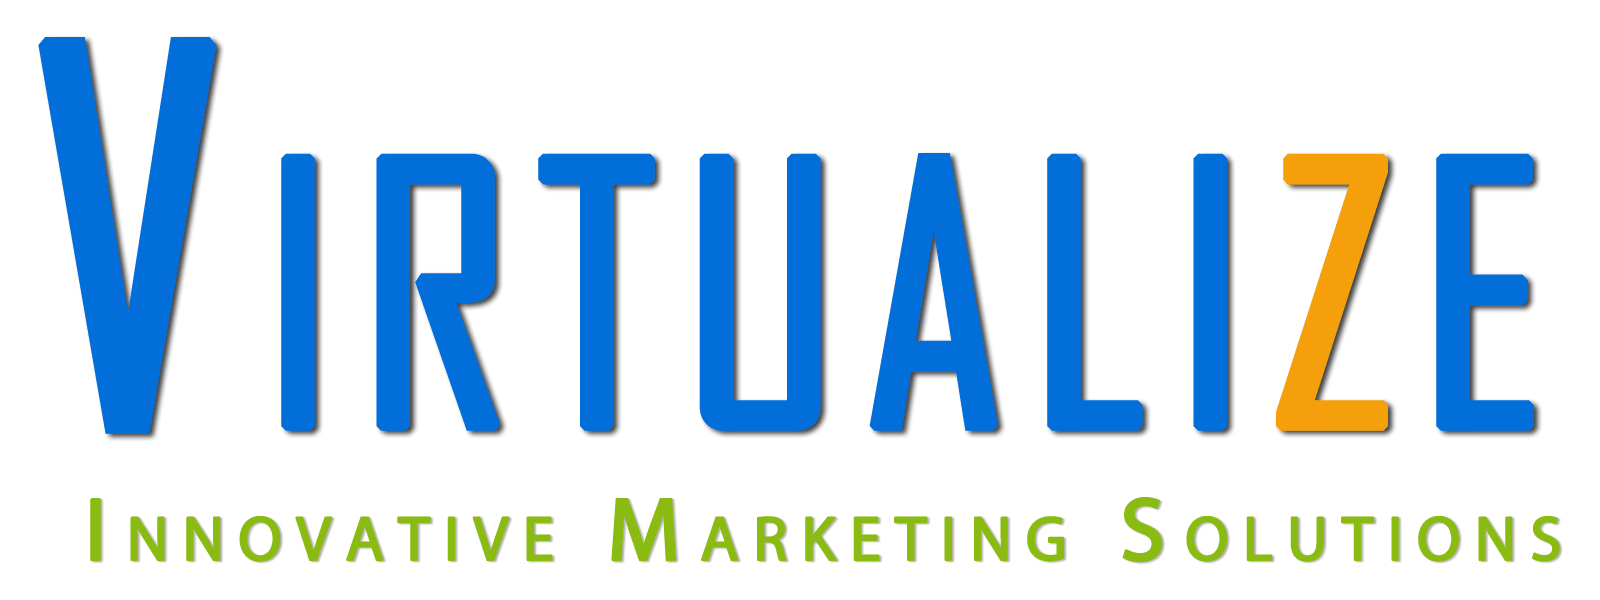 VIRTUALIZE - Innovative Marketing Solutions (Brisbane)